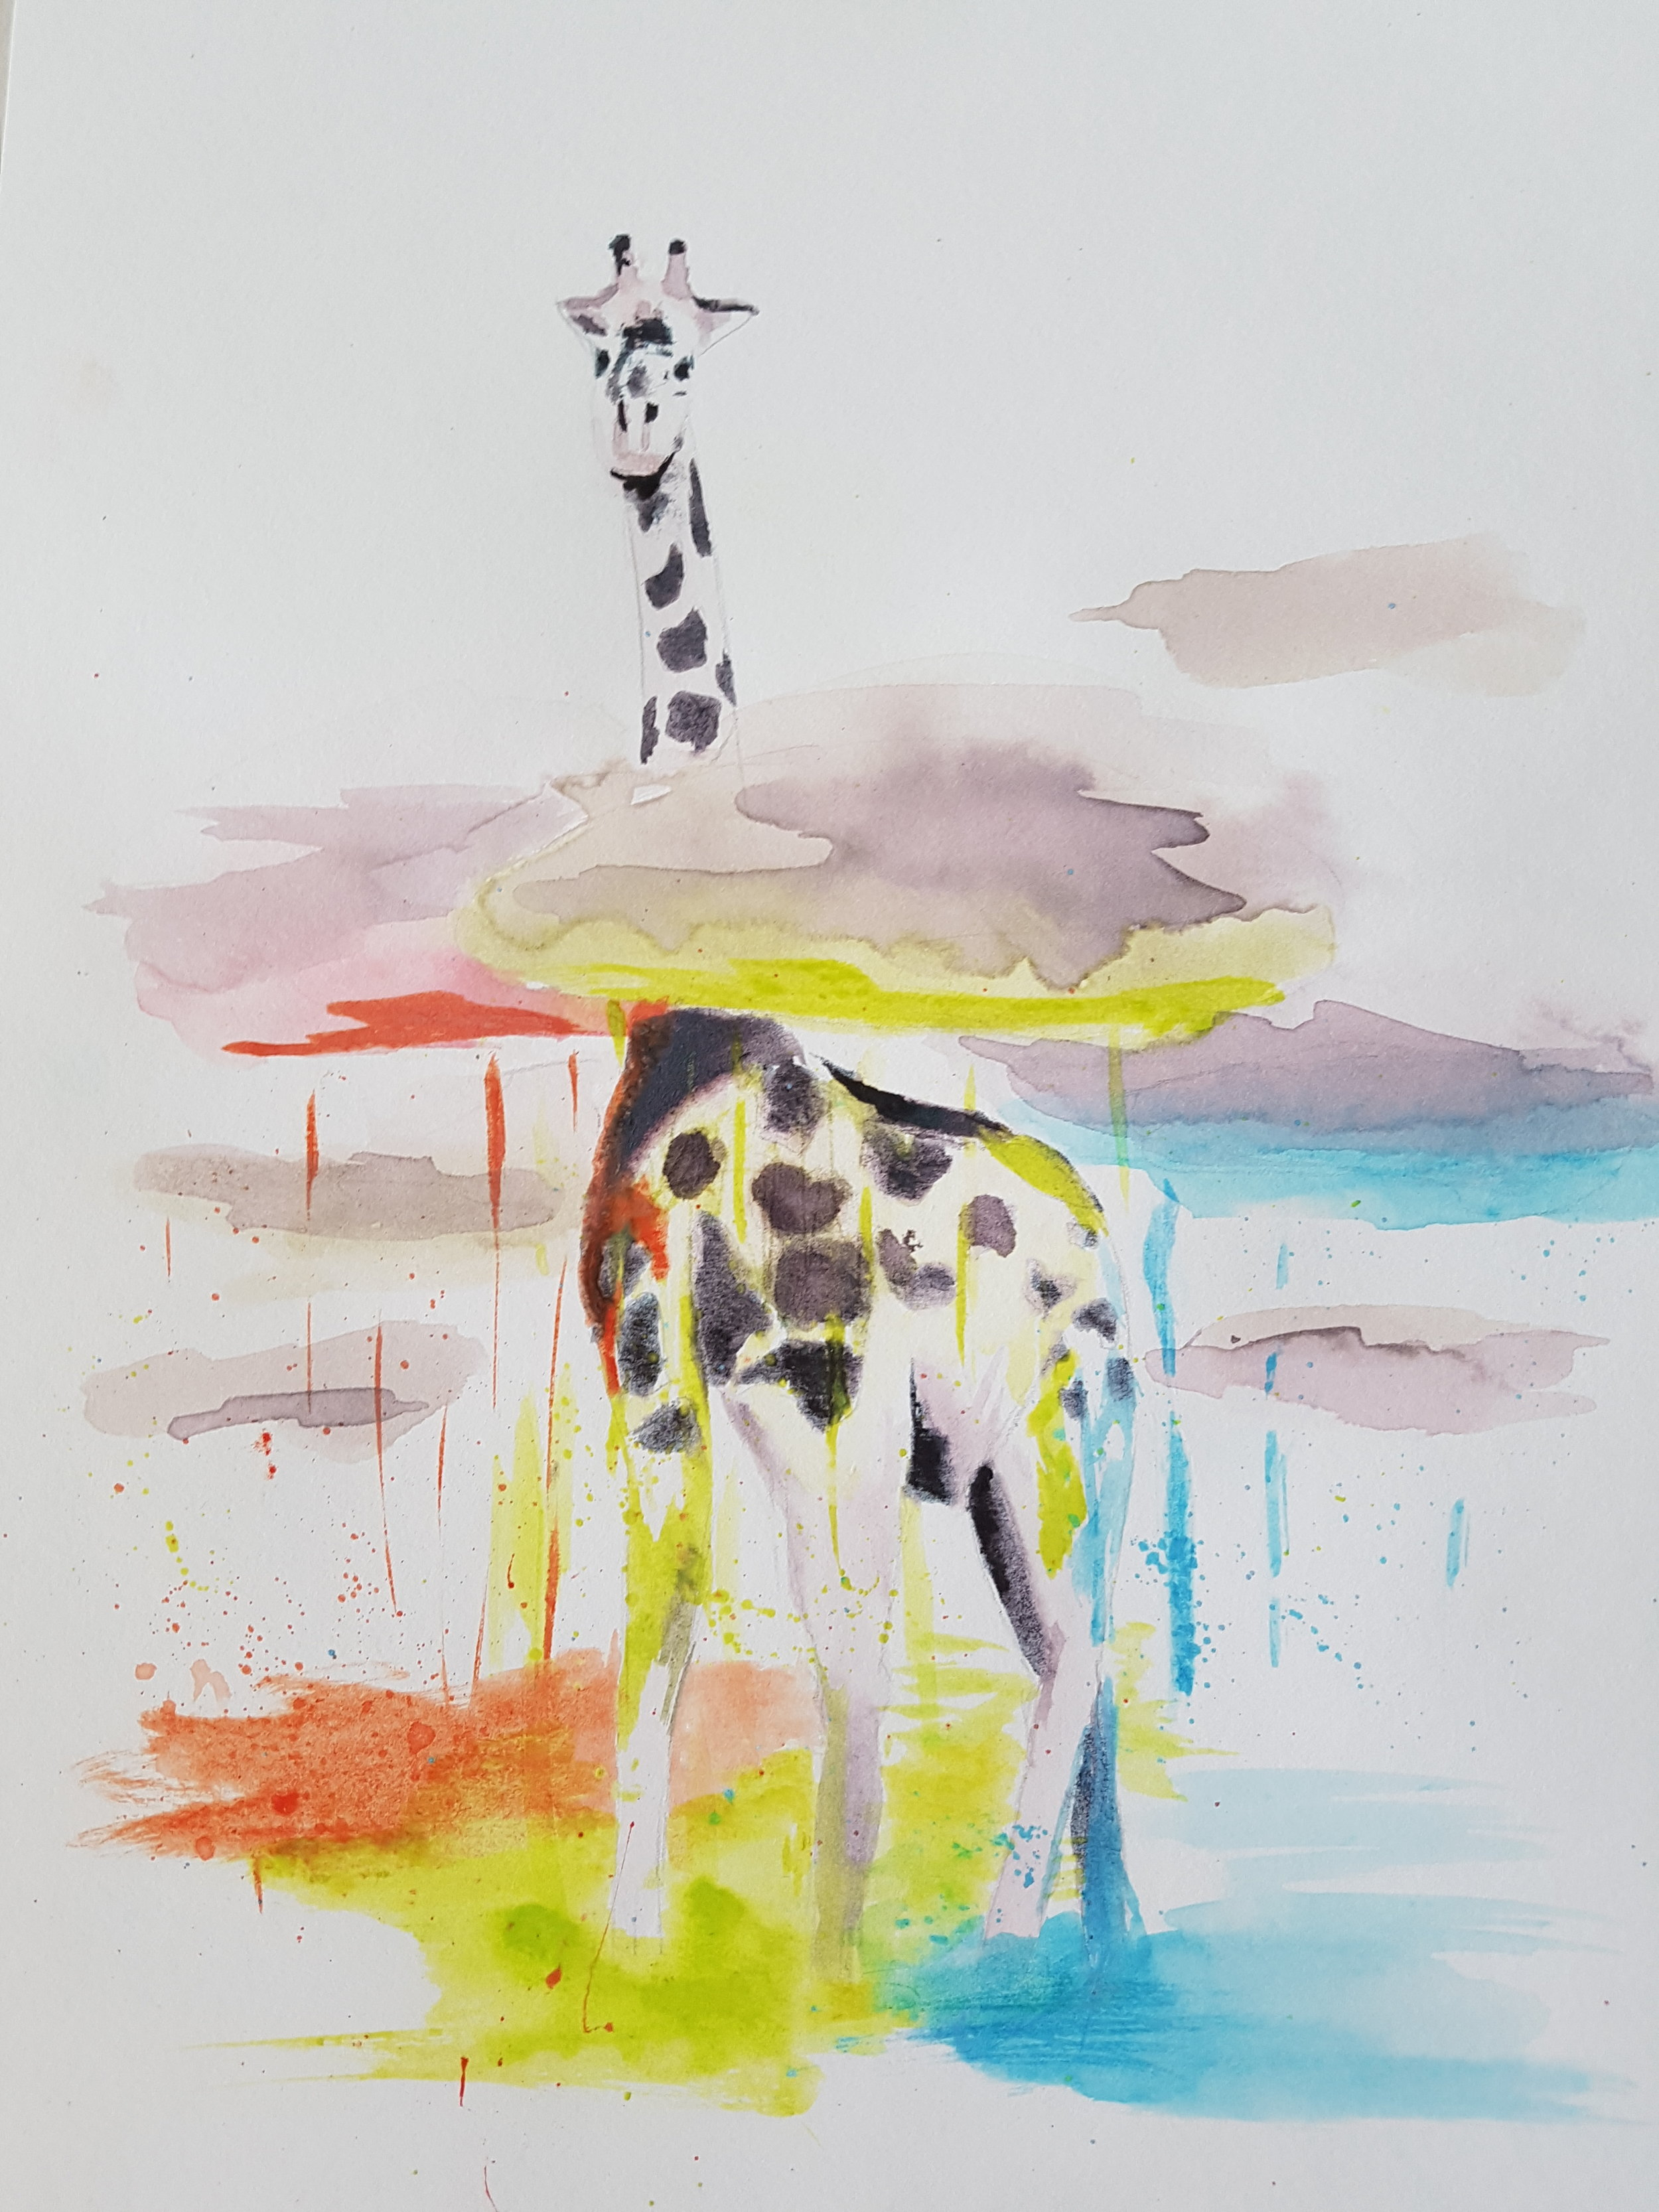 """""""Raining Color"""" 8x12  This was one of the very first paintings I did with my Crayola watercolor set. I did a series of watercolor animals I found online, where the goal was to simply paint what I saw. I chose this giraffe because the crayola colors were so wild and bright that I knew they wouldn't look natural in any kind of landscape. So I picked a painting where I could break the rules a little. Not to mention I loved the original idea (credit to Phillip Grein at  boredpanda.com )."""